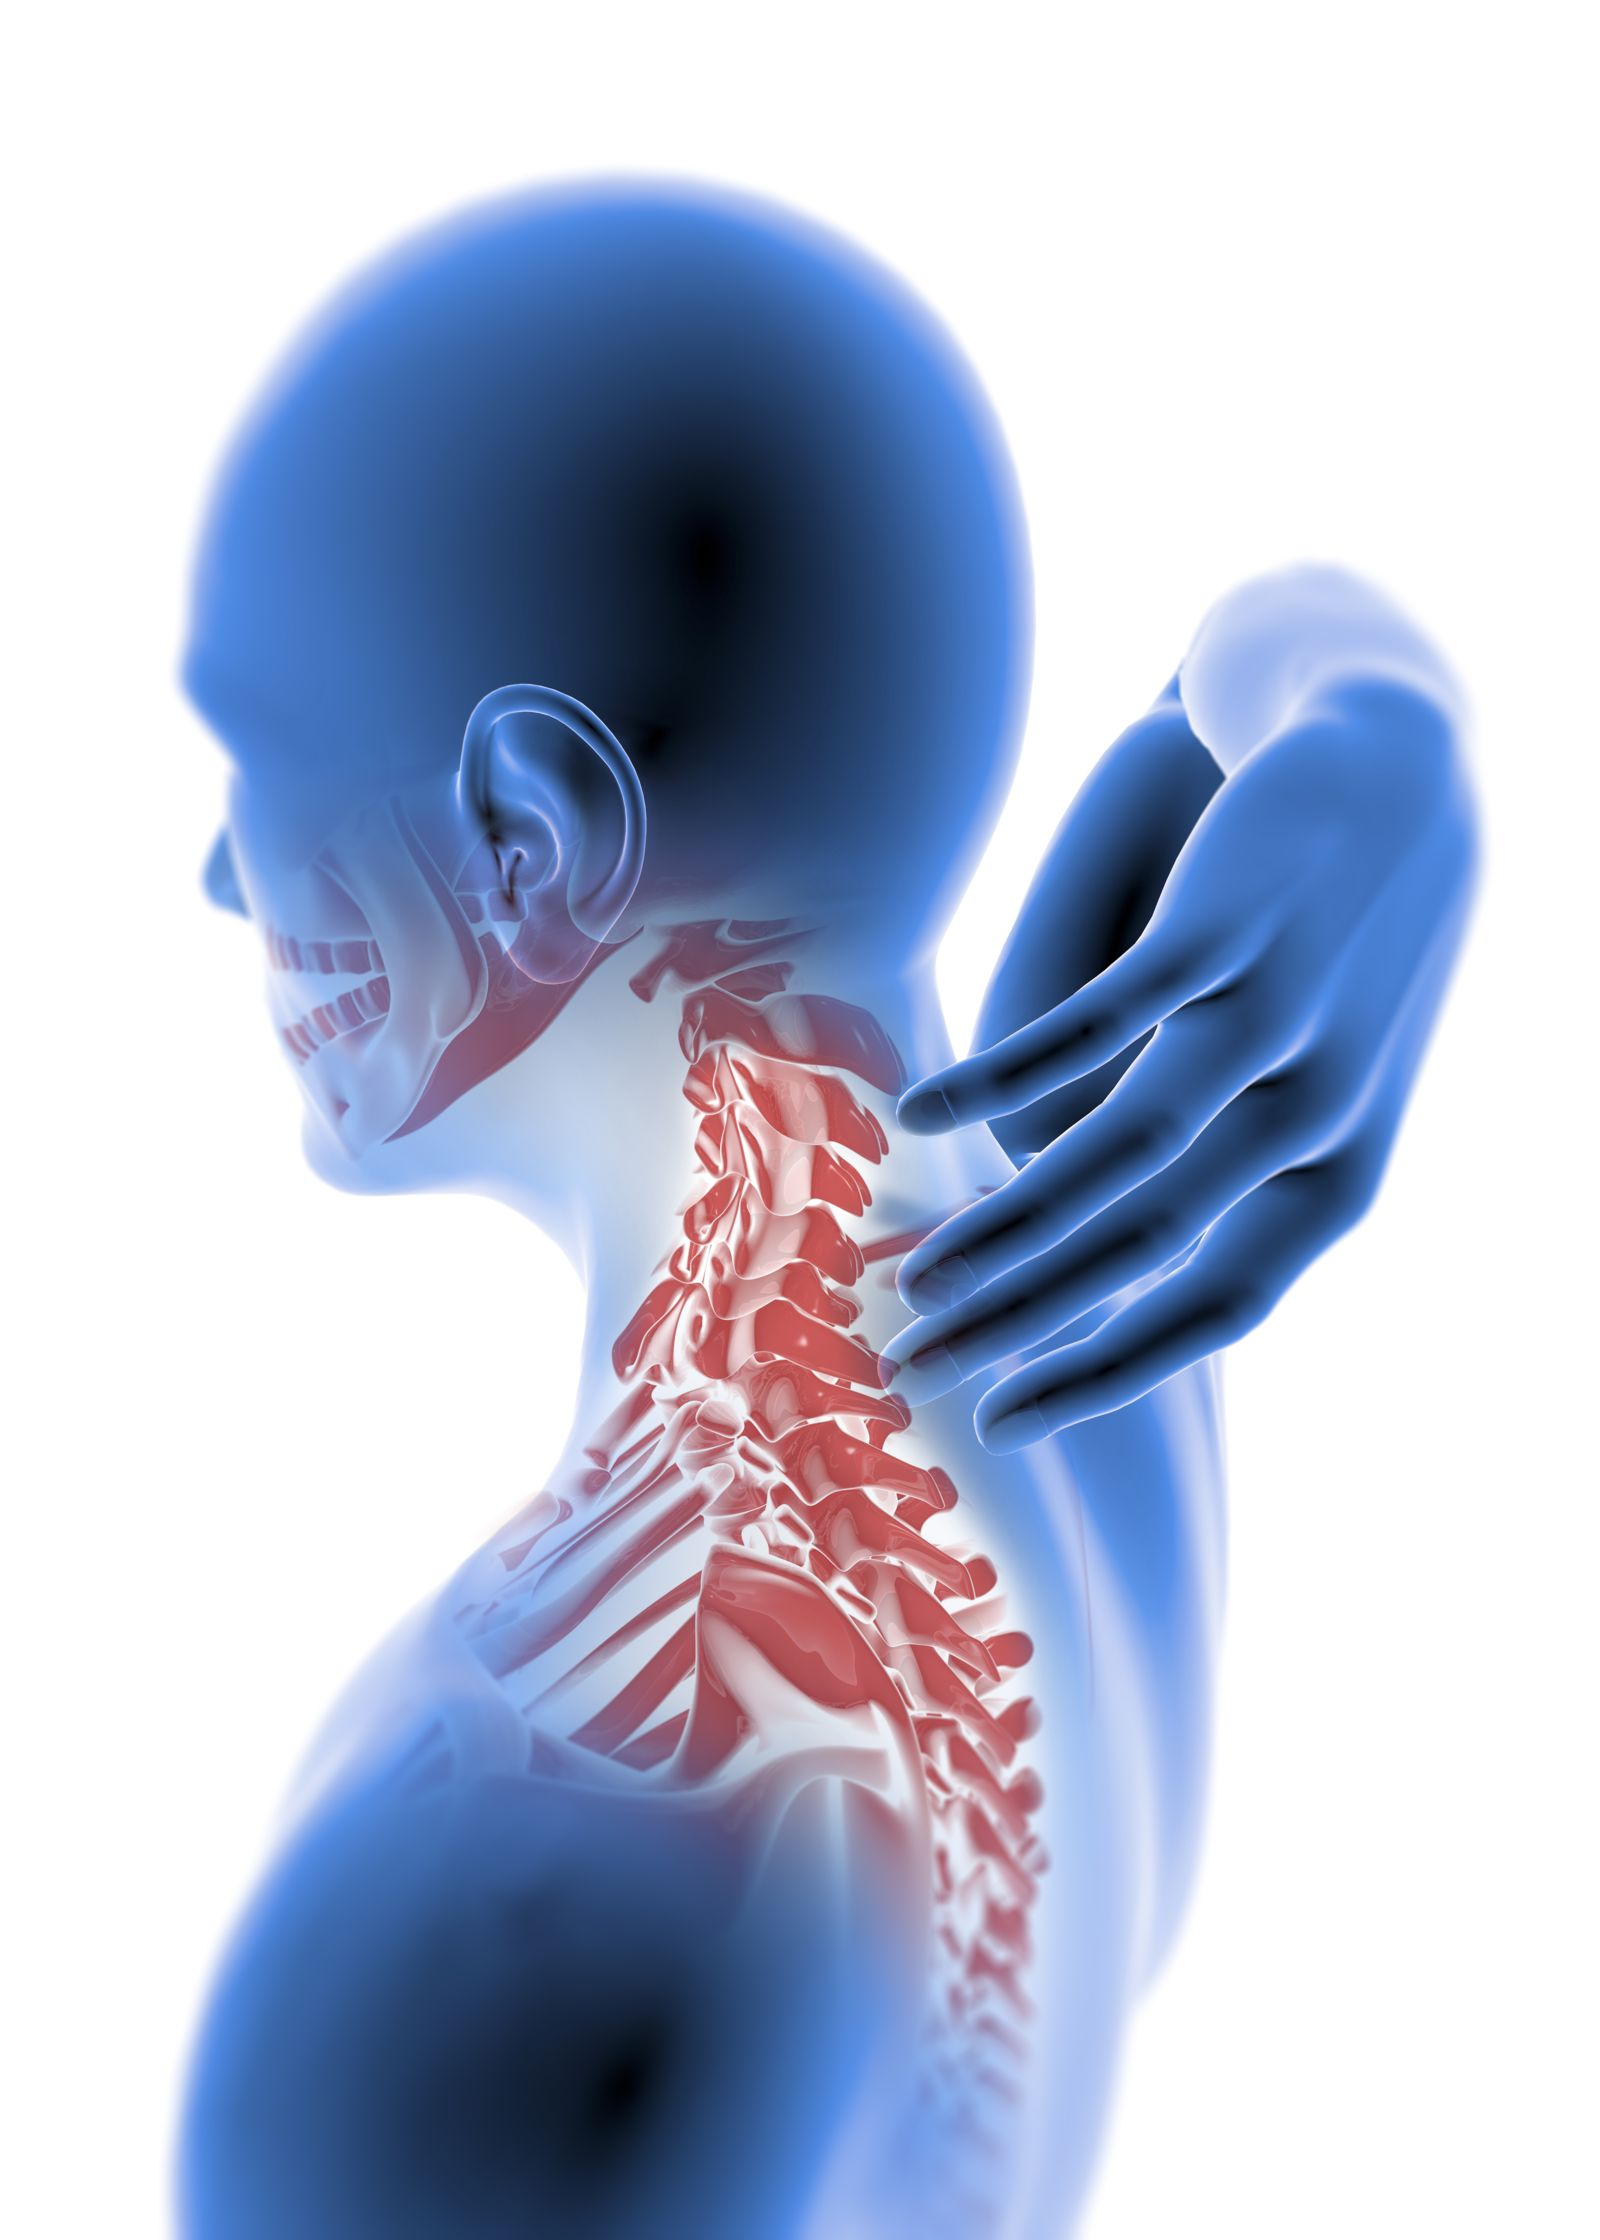 Depiction of Shoulder Pain